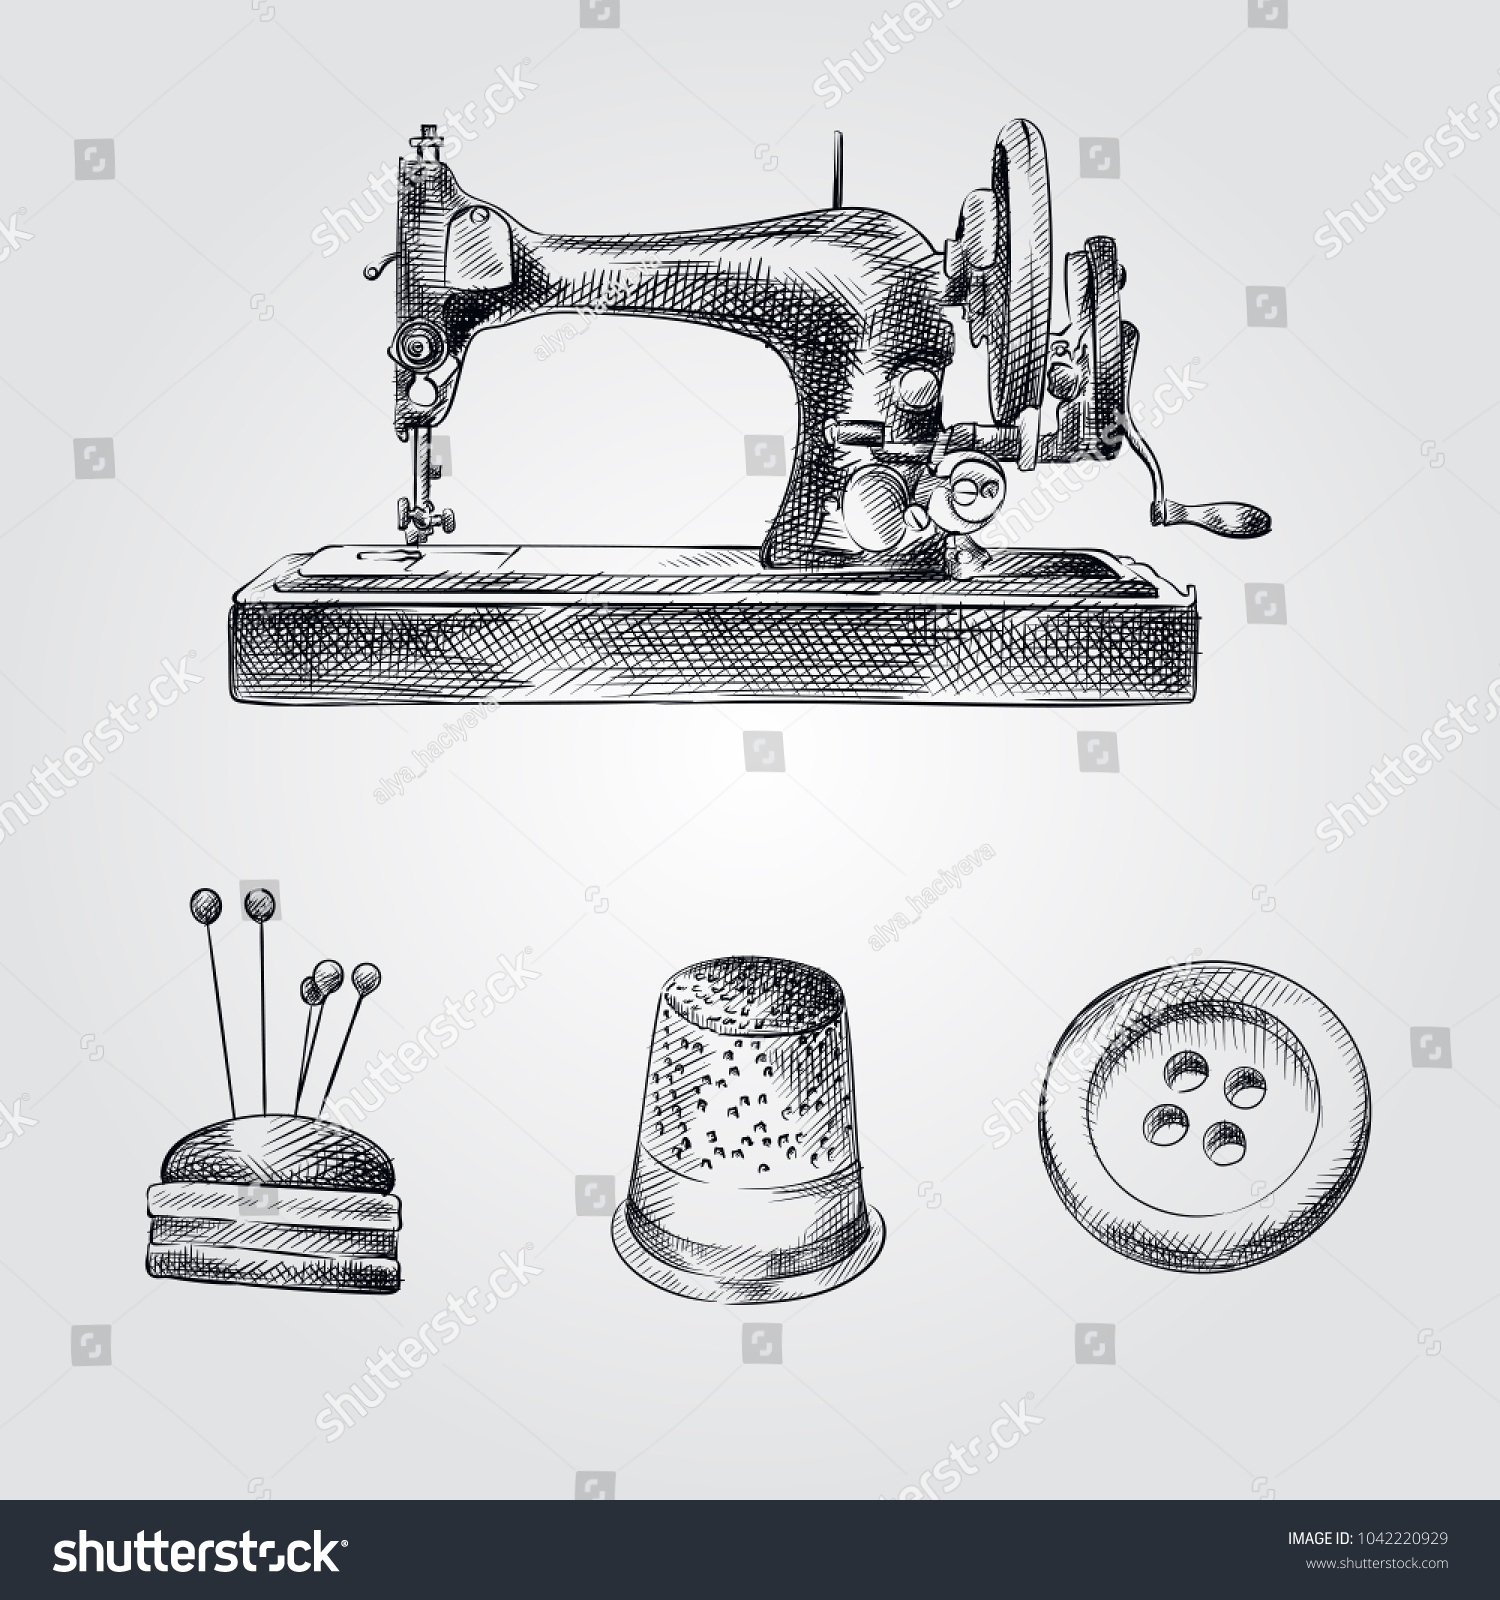 Hand Drawn Sewing Sketches Set Collection Stock Vector (Royalty Free ...